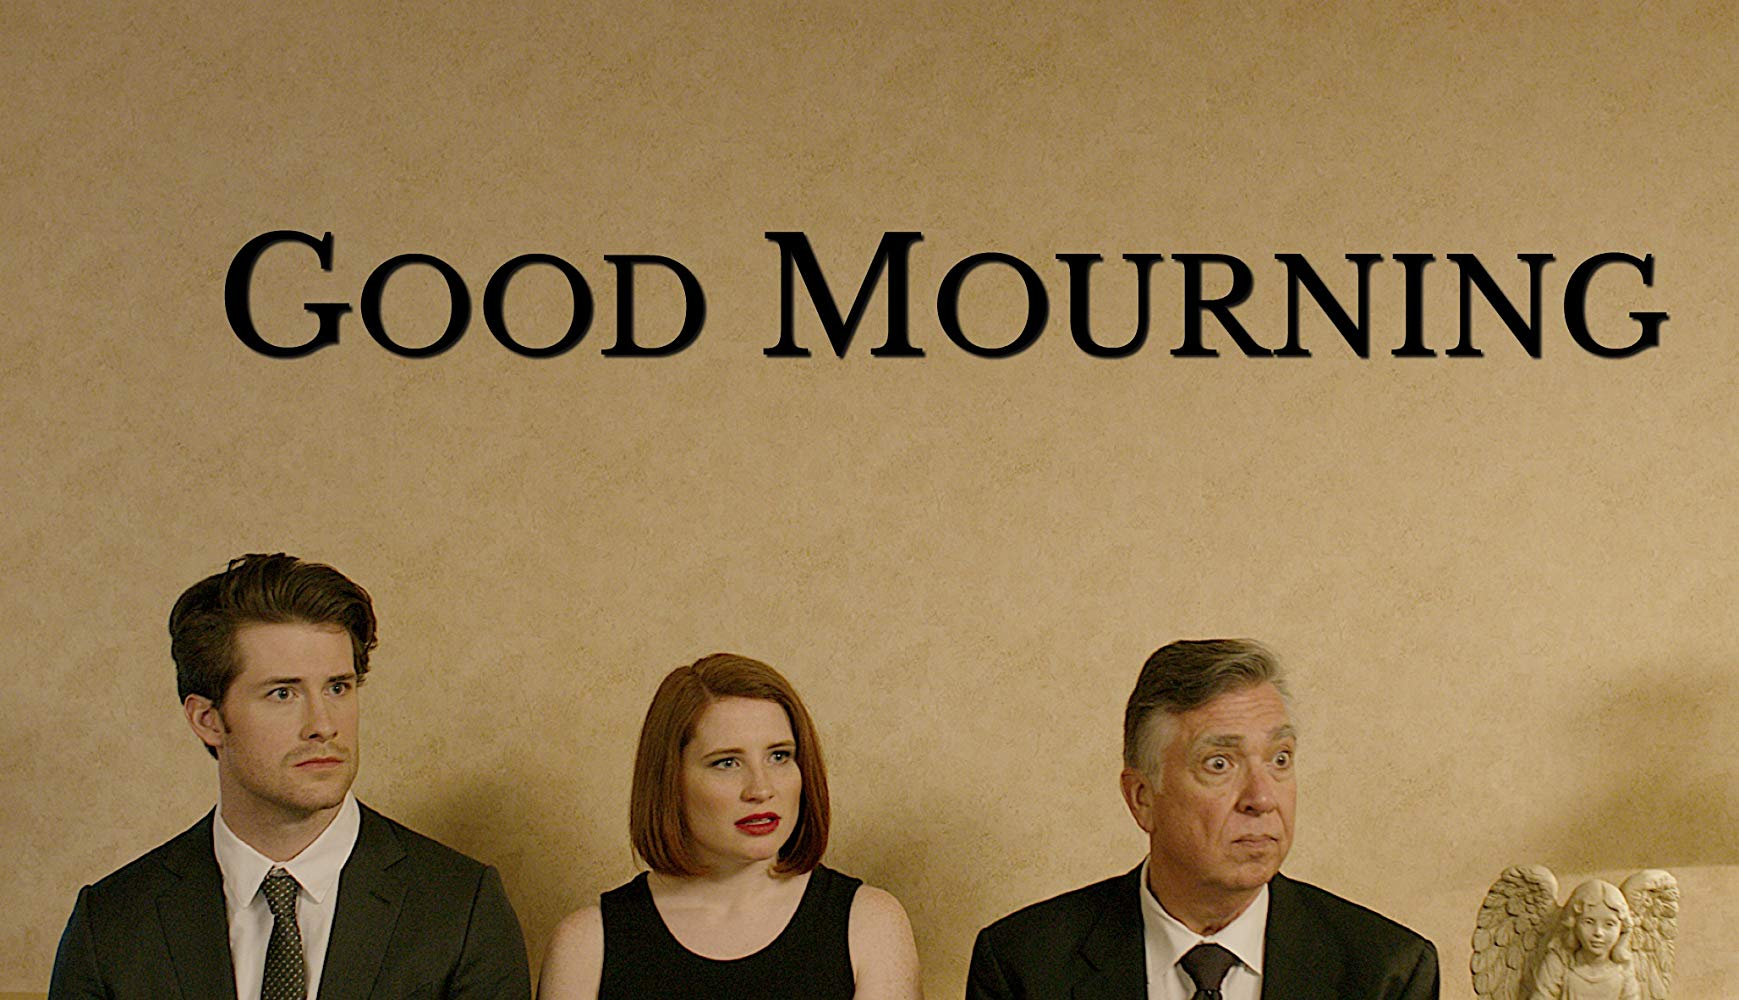 Good Mourning -  Producer